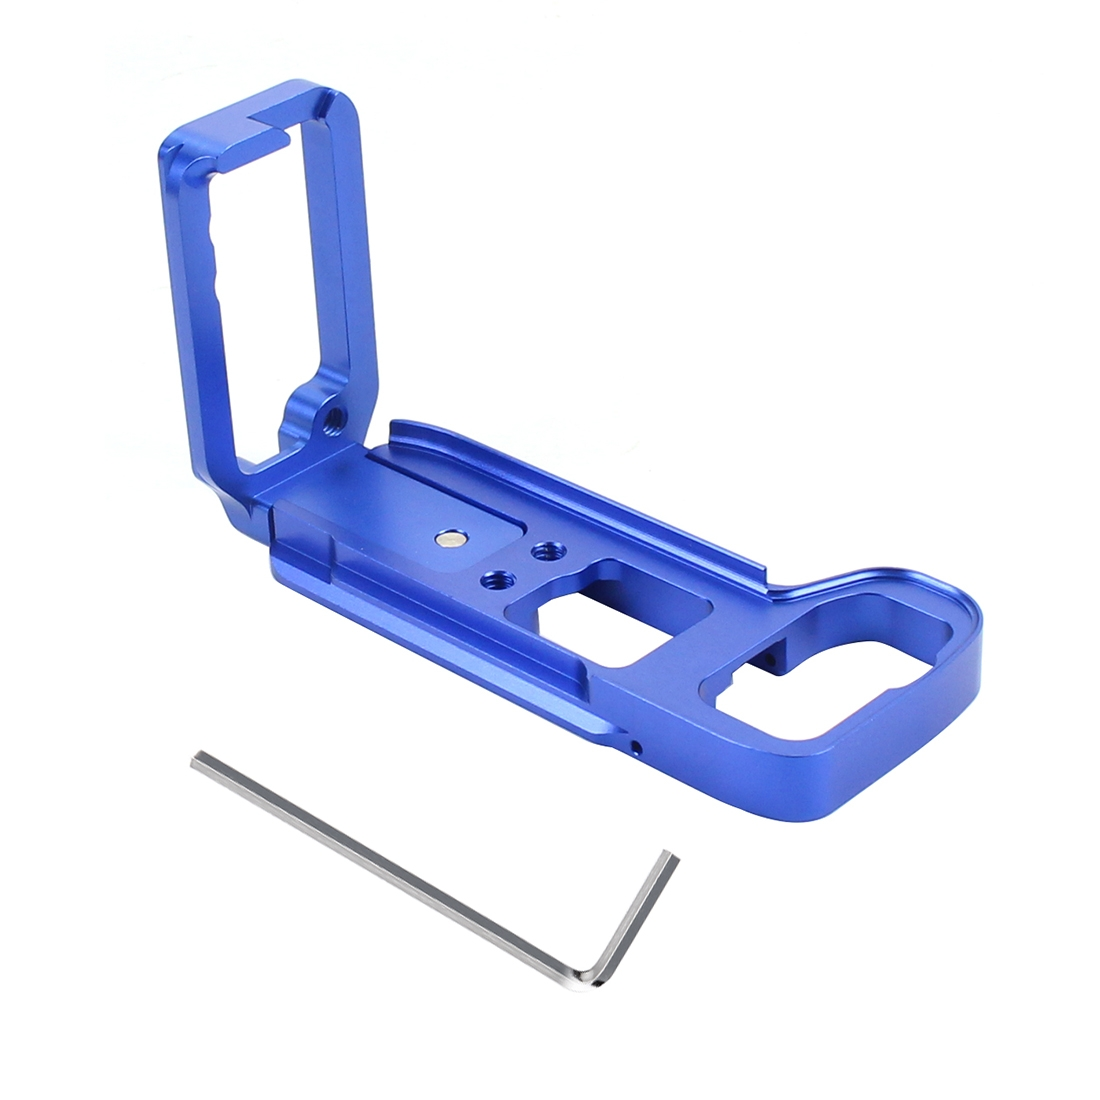 PULUZ 1/4 inch Vertical Shoot Quick Release L Plate Bracket Base Holder for Sony A9 (ILCE-9) / A7 III/ A7R III (Blue)